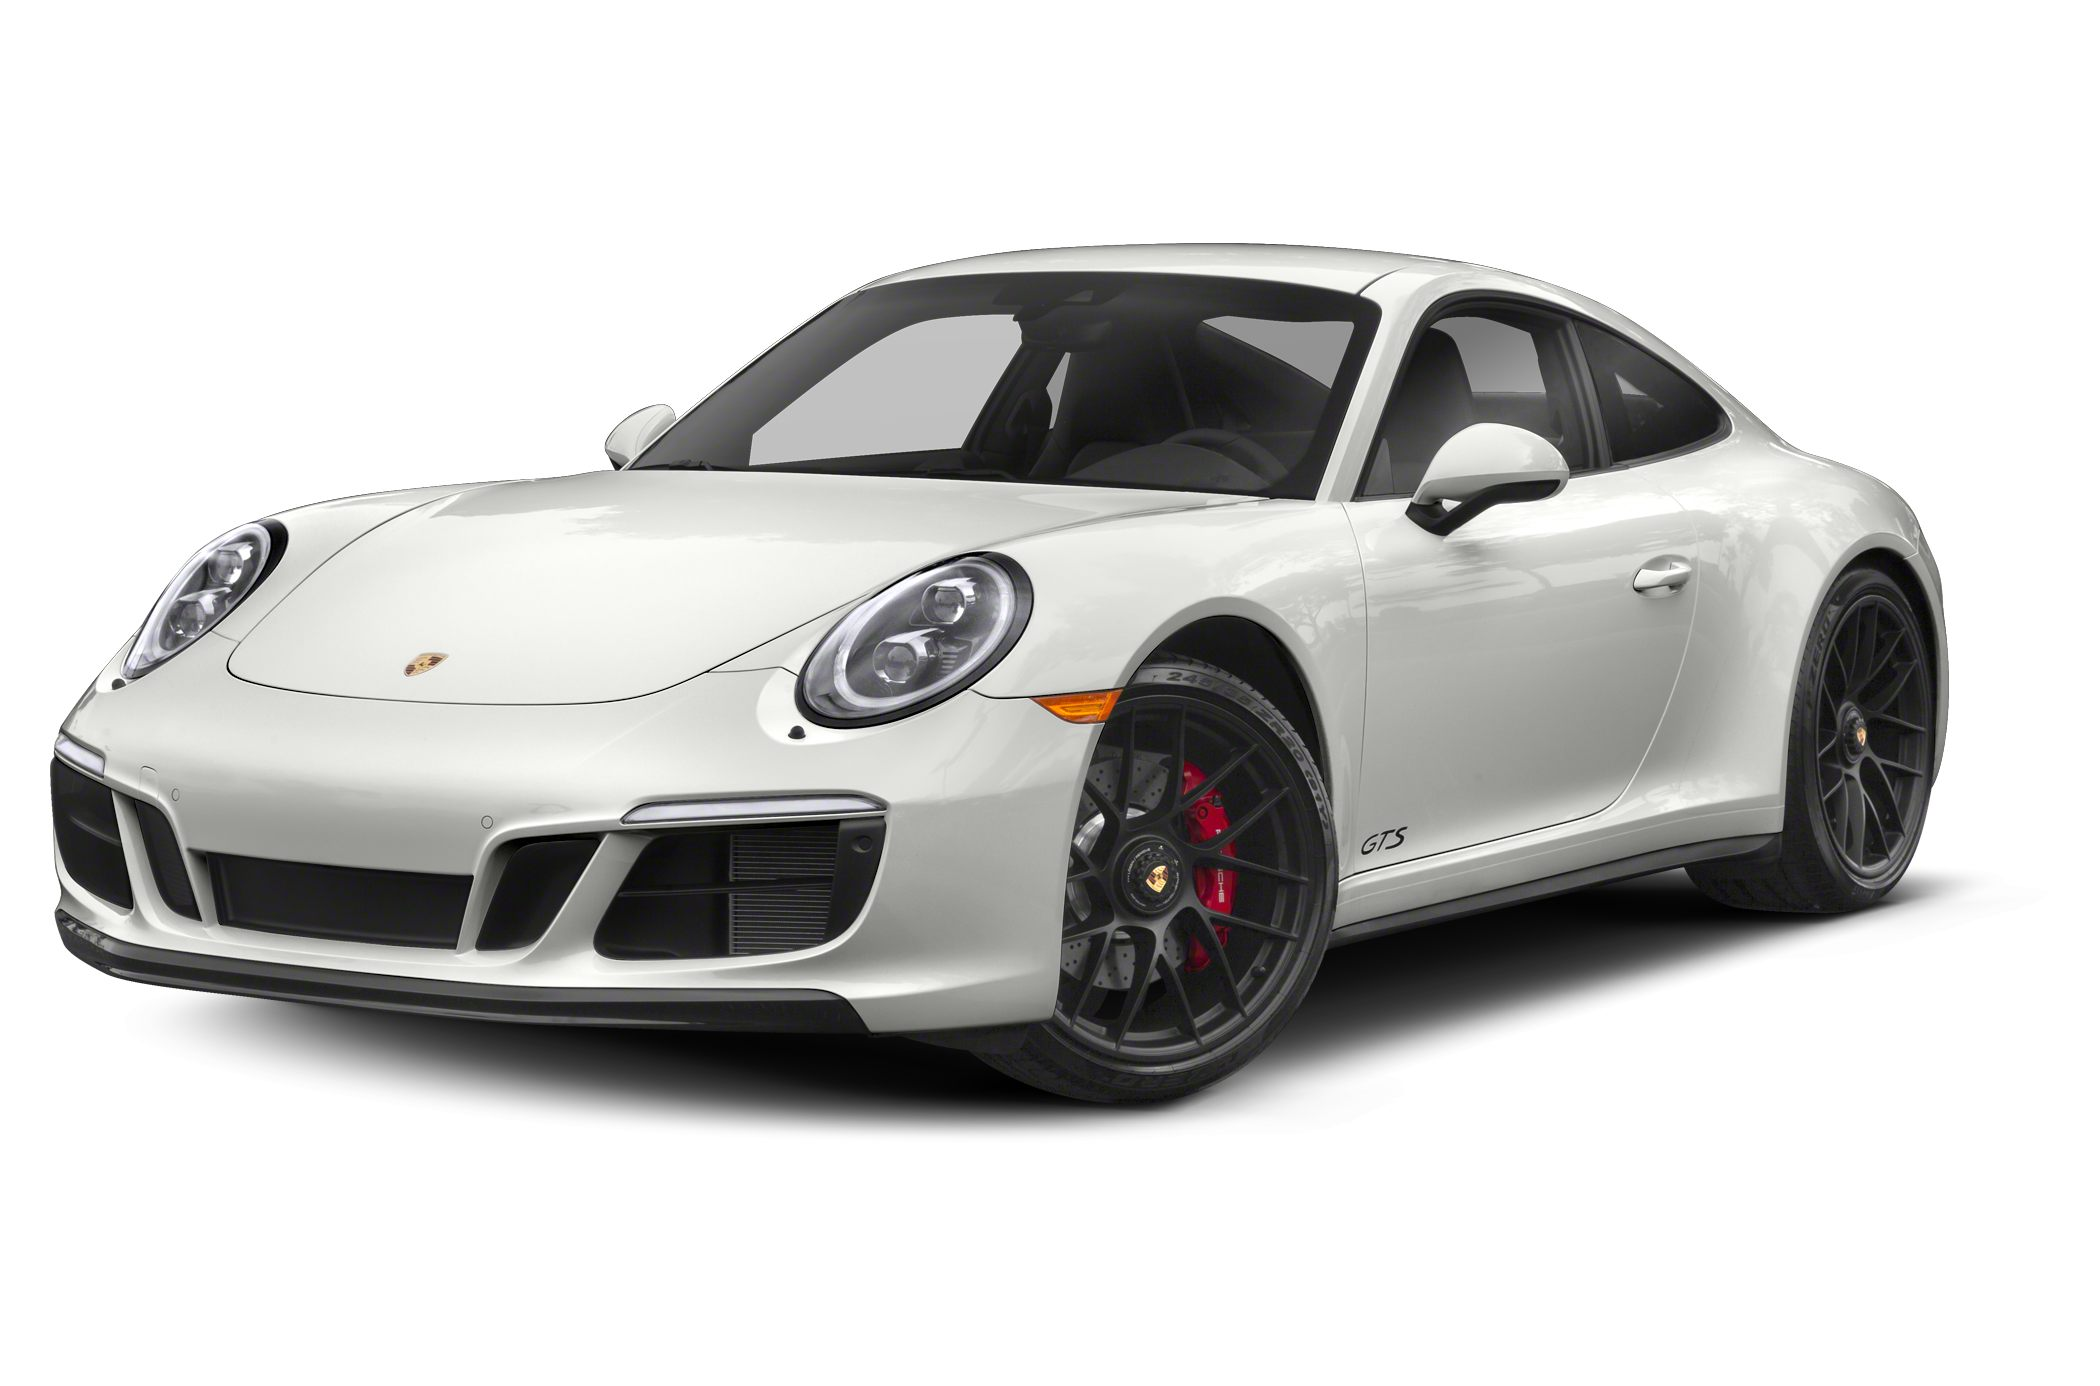 2019 Porsche 911 Carrera 4 GTS 2dr All wheel Drive Coupe Specs and Prices